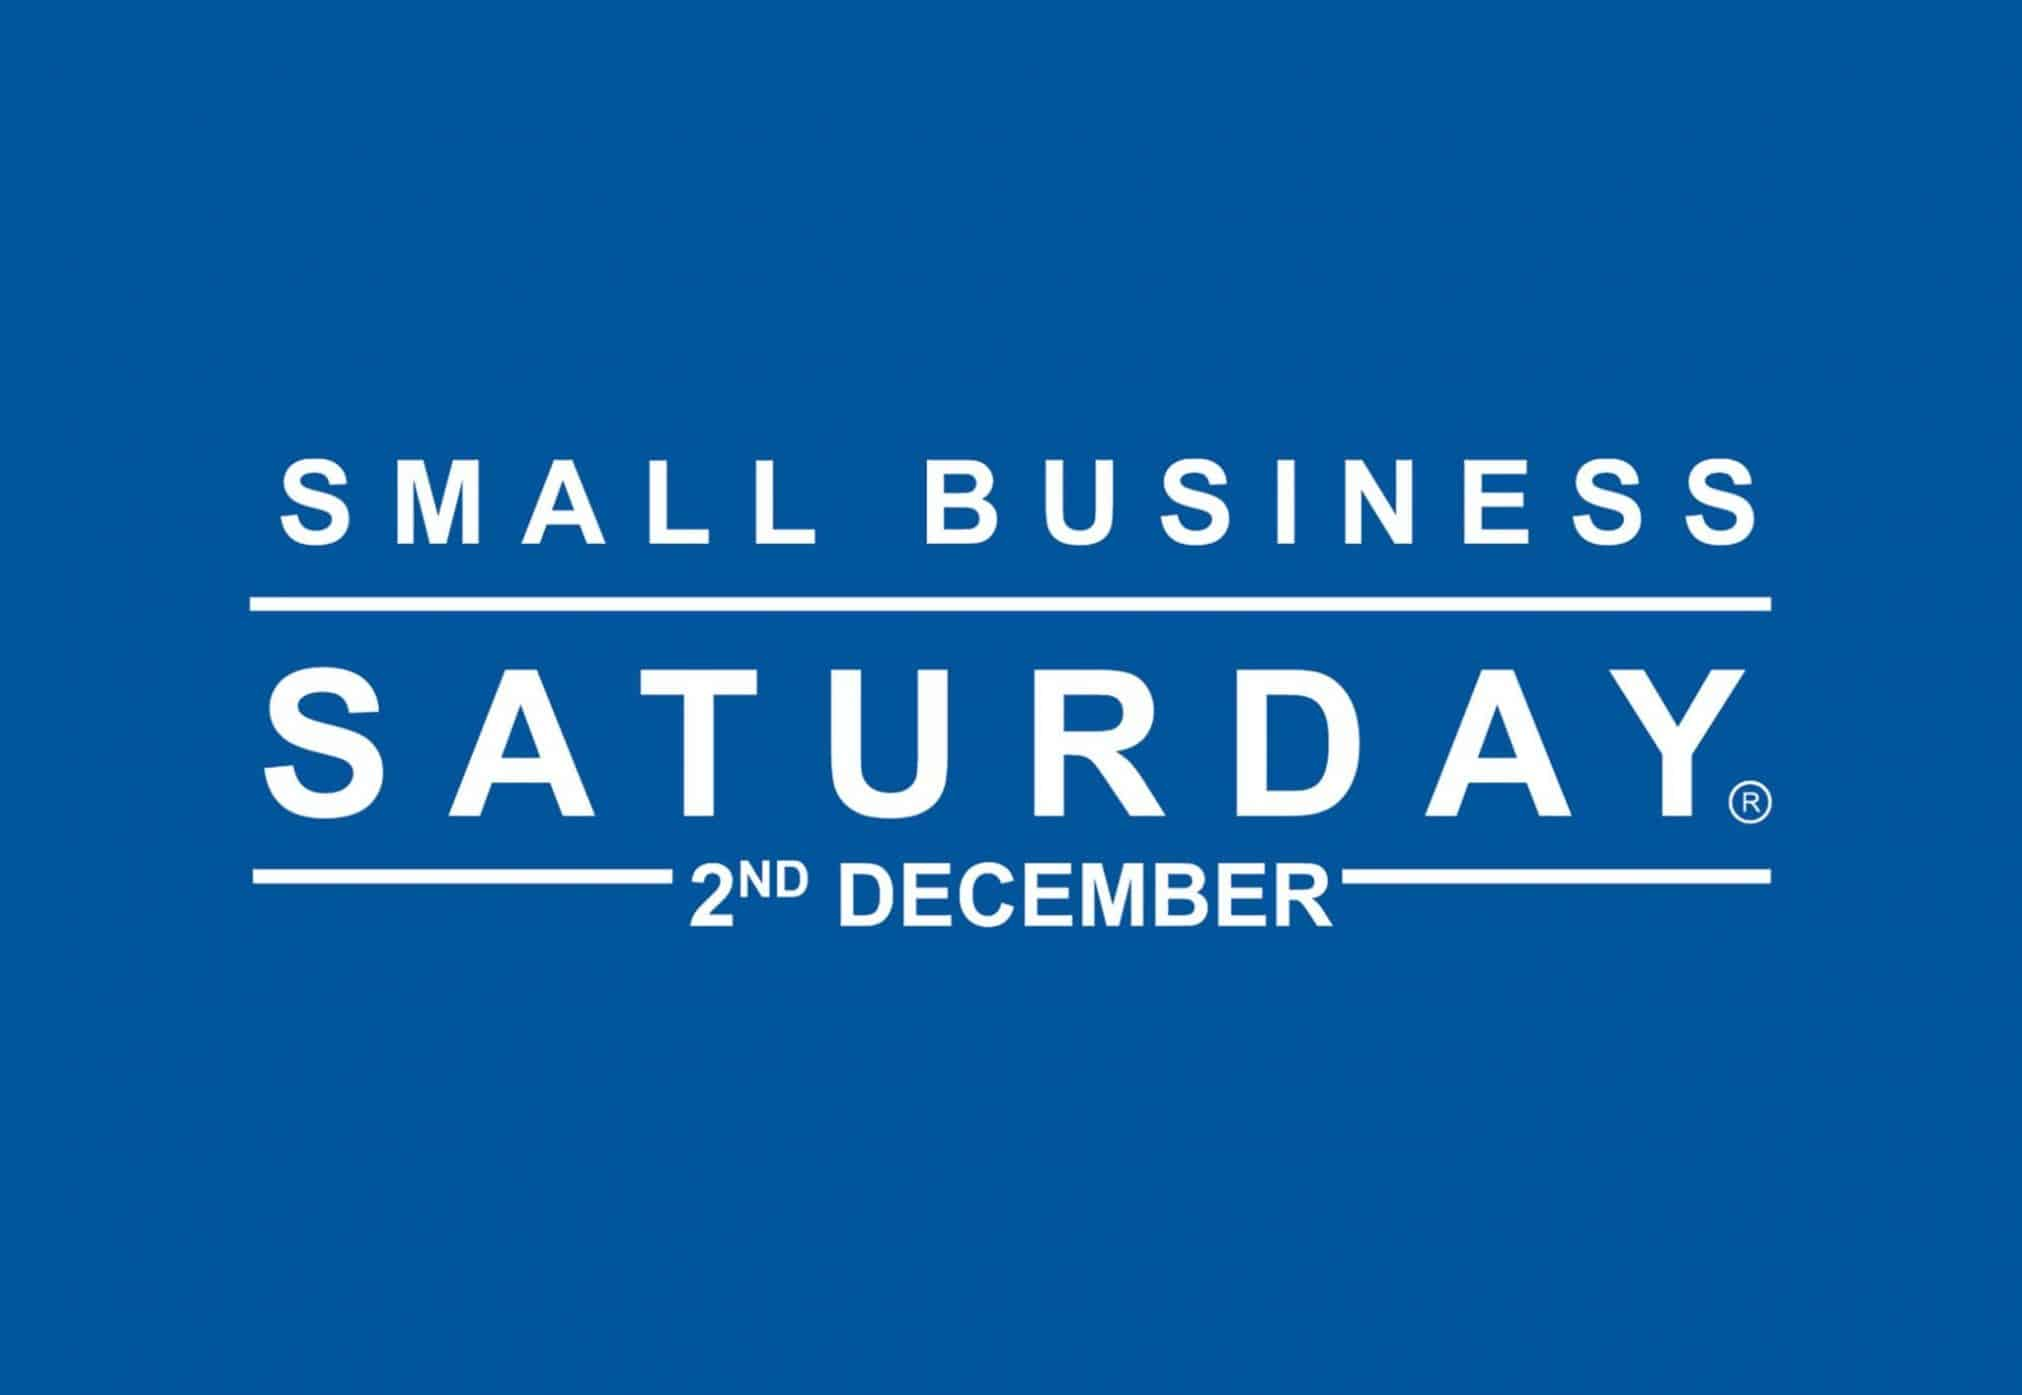 Small Business Saturday – 2nd December